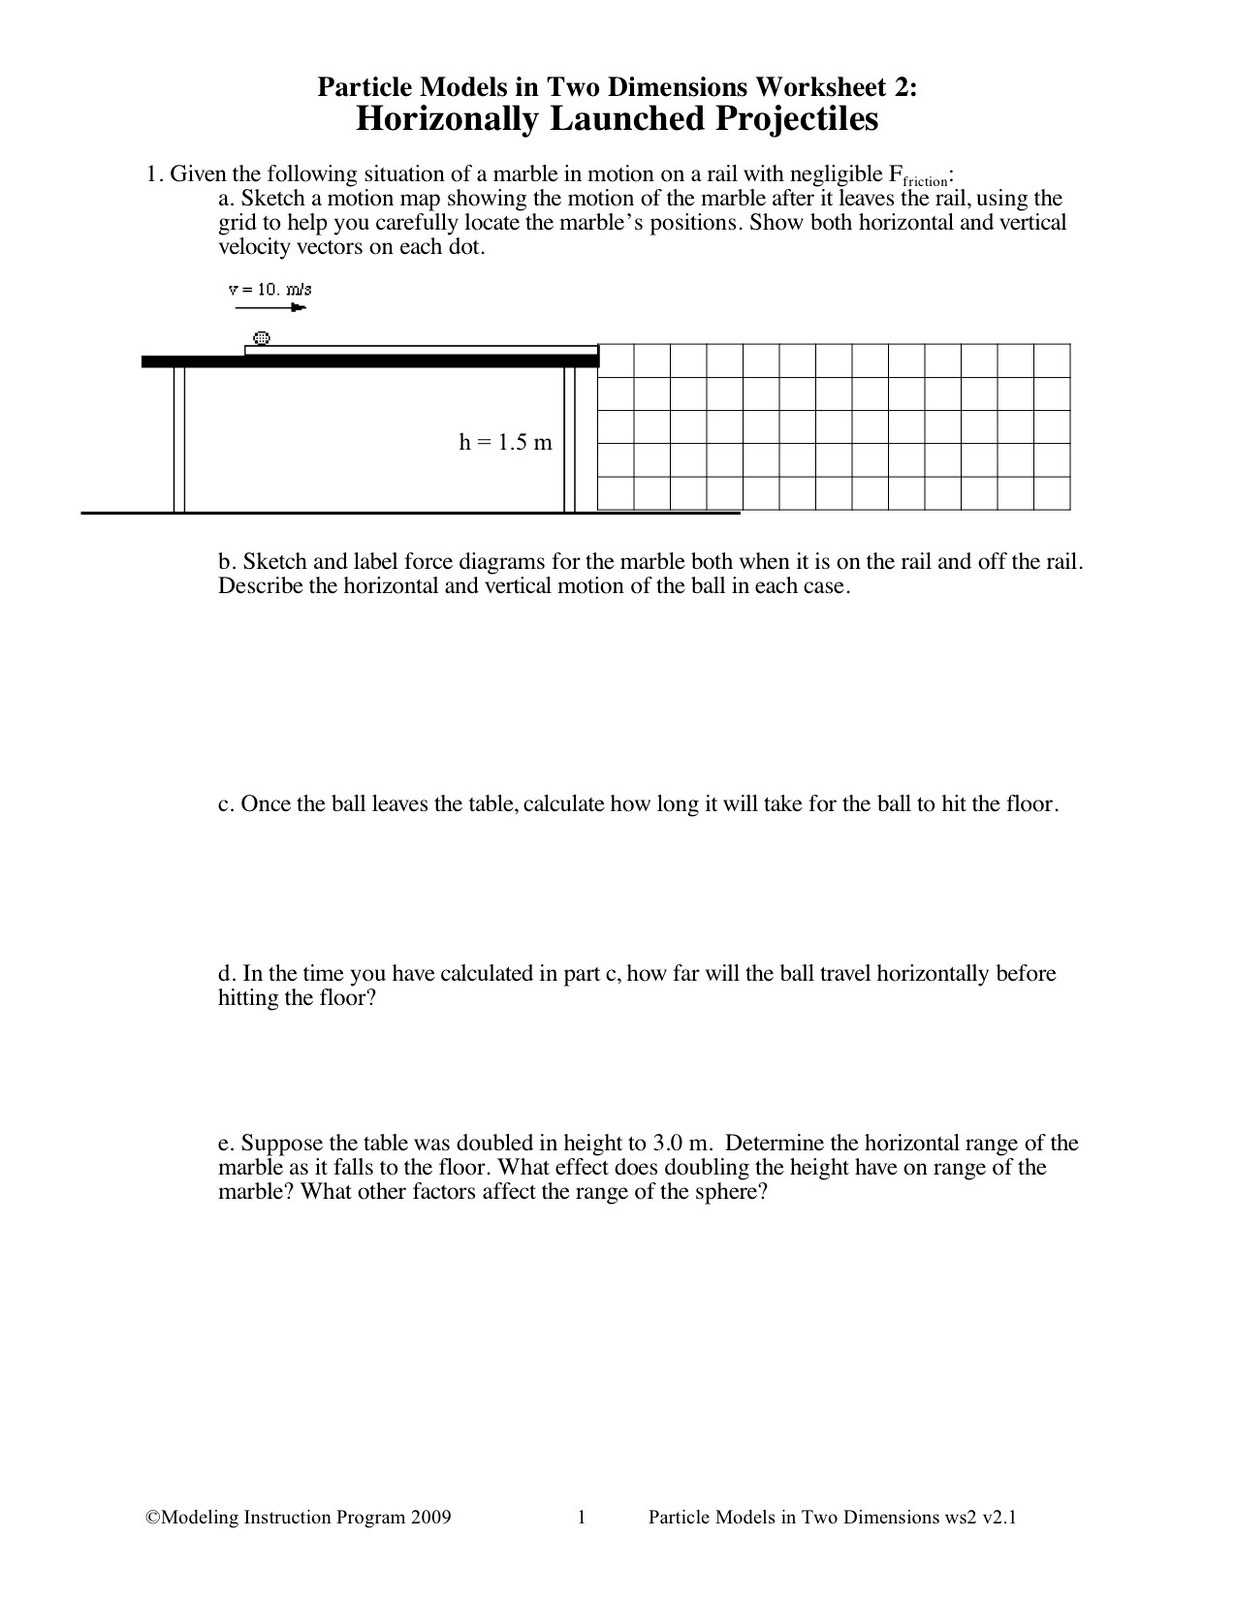 worksheet Force Diagrams Worksheet Answers dchs honors physics 2011 a so weve gone over this twenty million times but in case your memory is bit foggy the marbles motion parabolic because balls horizontal